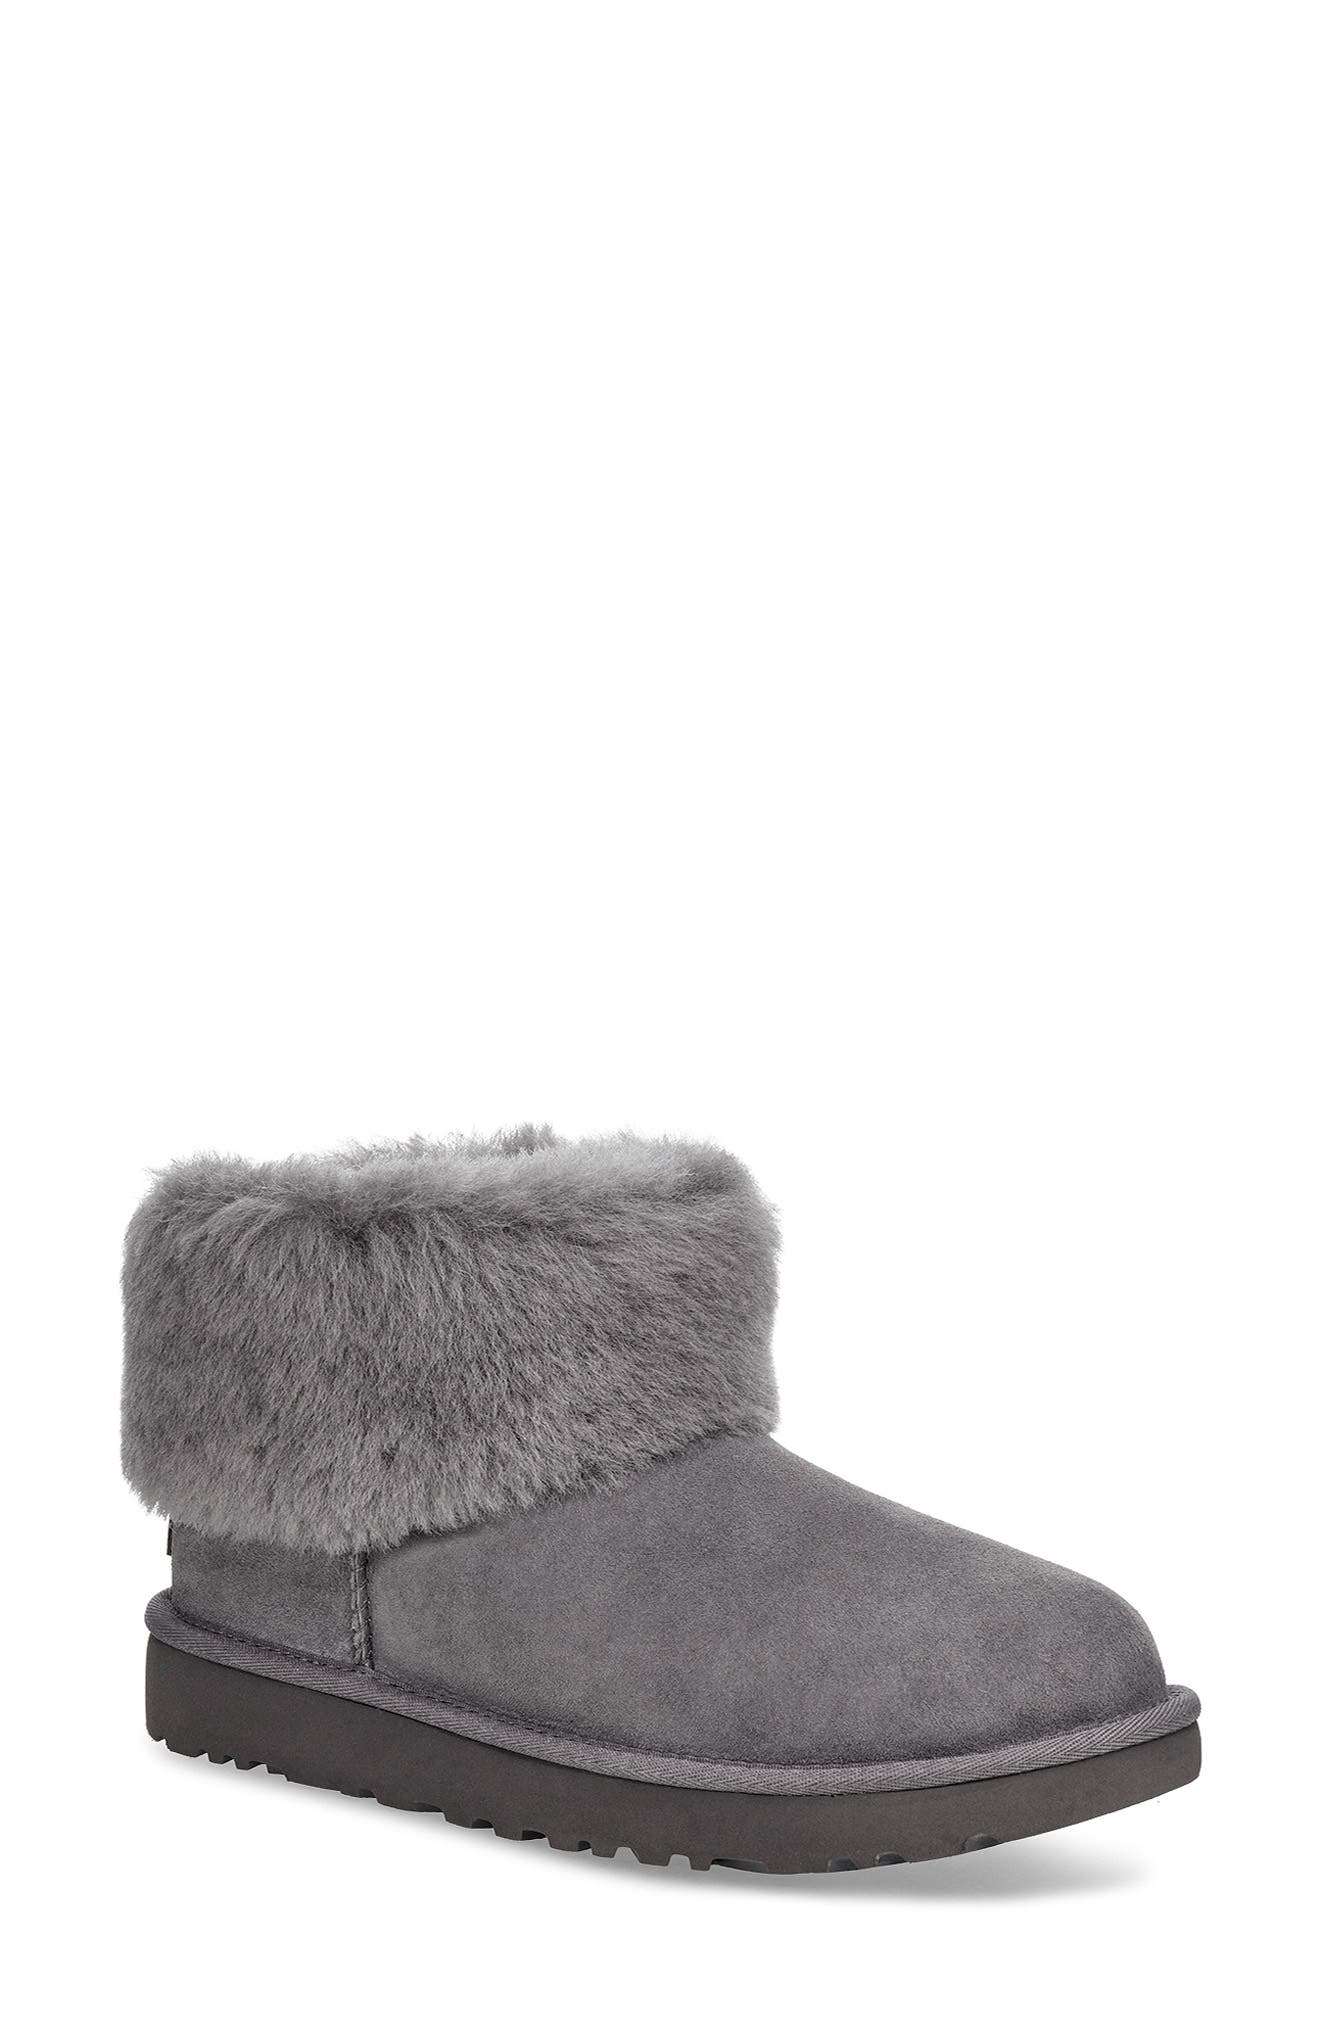 A plush, short shaft of fluffy genuine shearling on a cozy boot-a fan-favorite updated with a modern look. Style Name: UGG Classic Mini Fluff Genuine Shearling Bootie (Women). Style Number: 5874054. Available in stores.